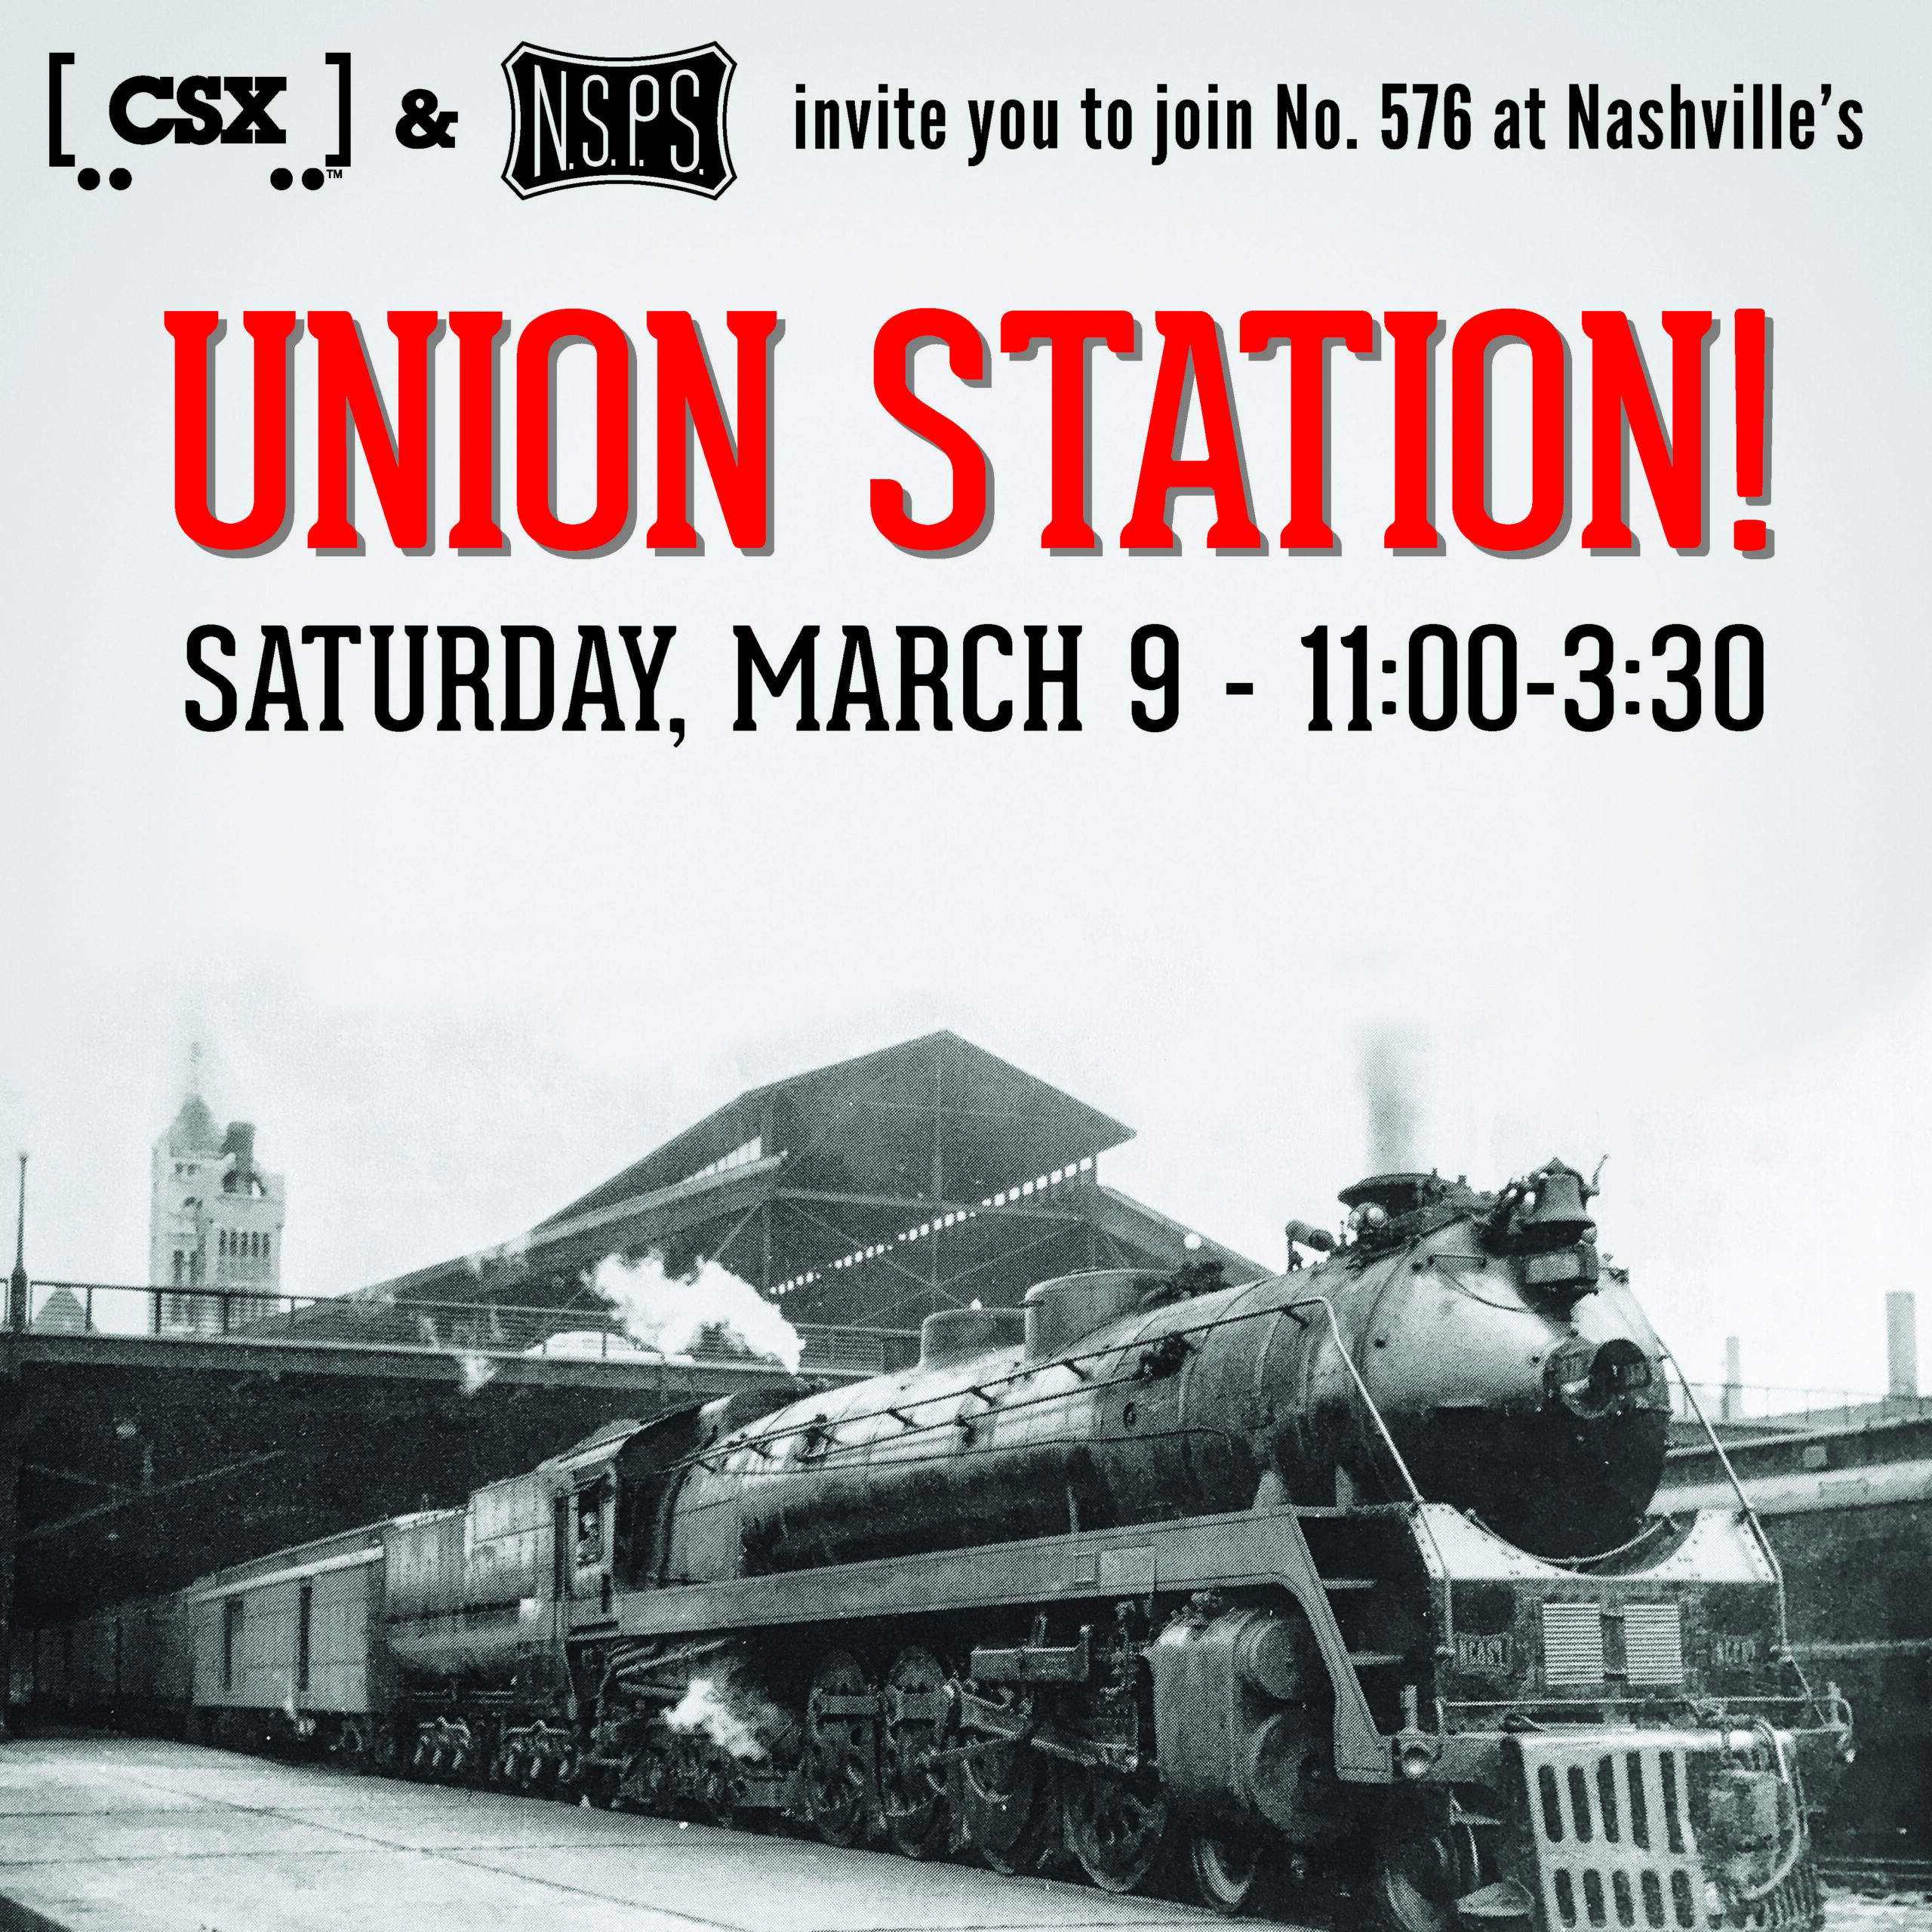 More Details for Next Stop: Union Station!